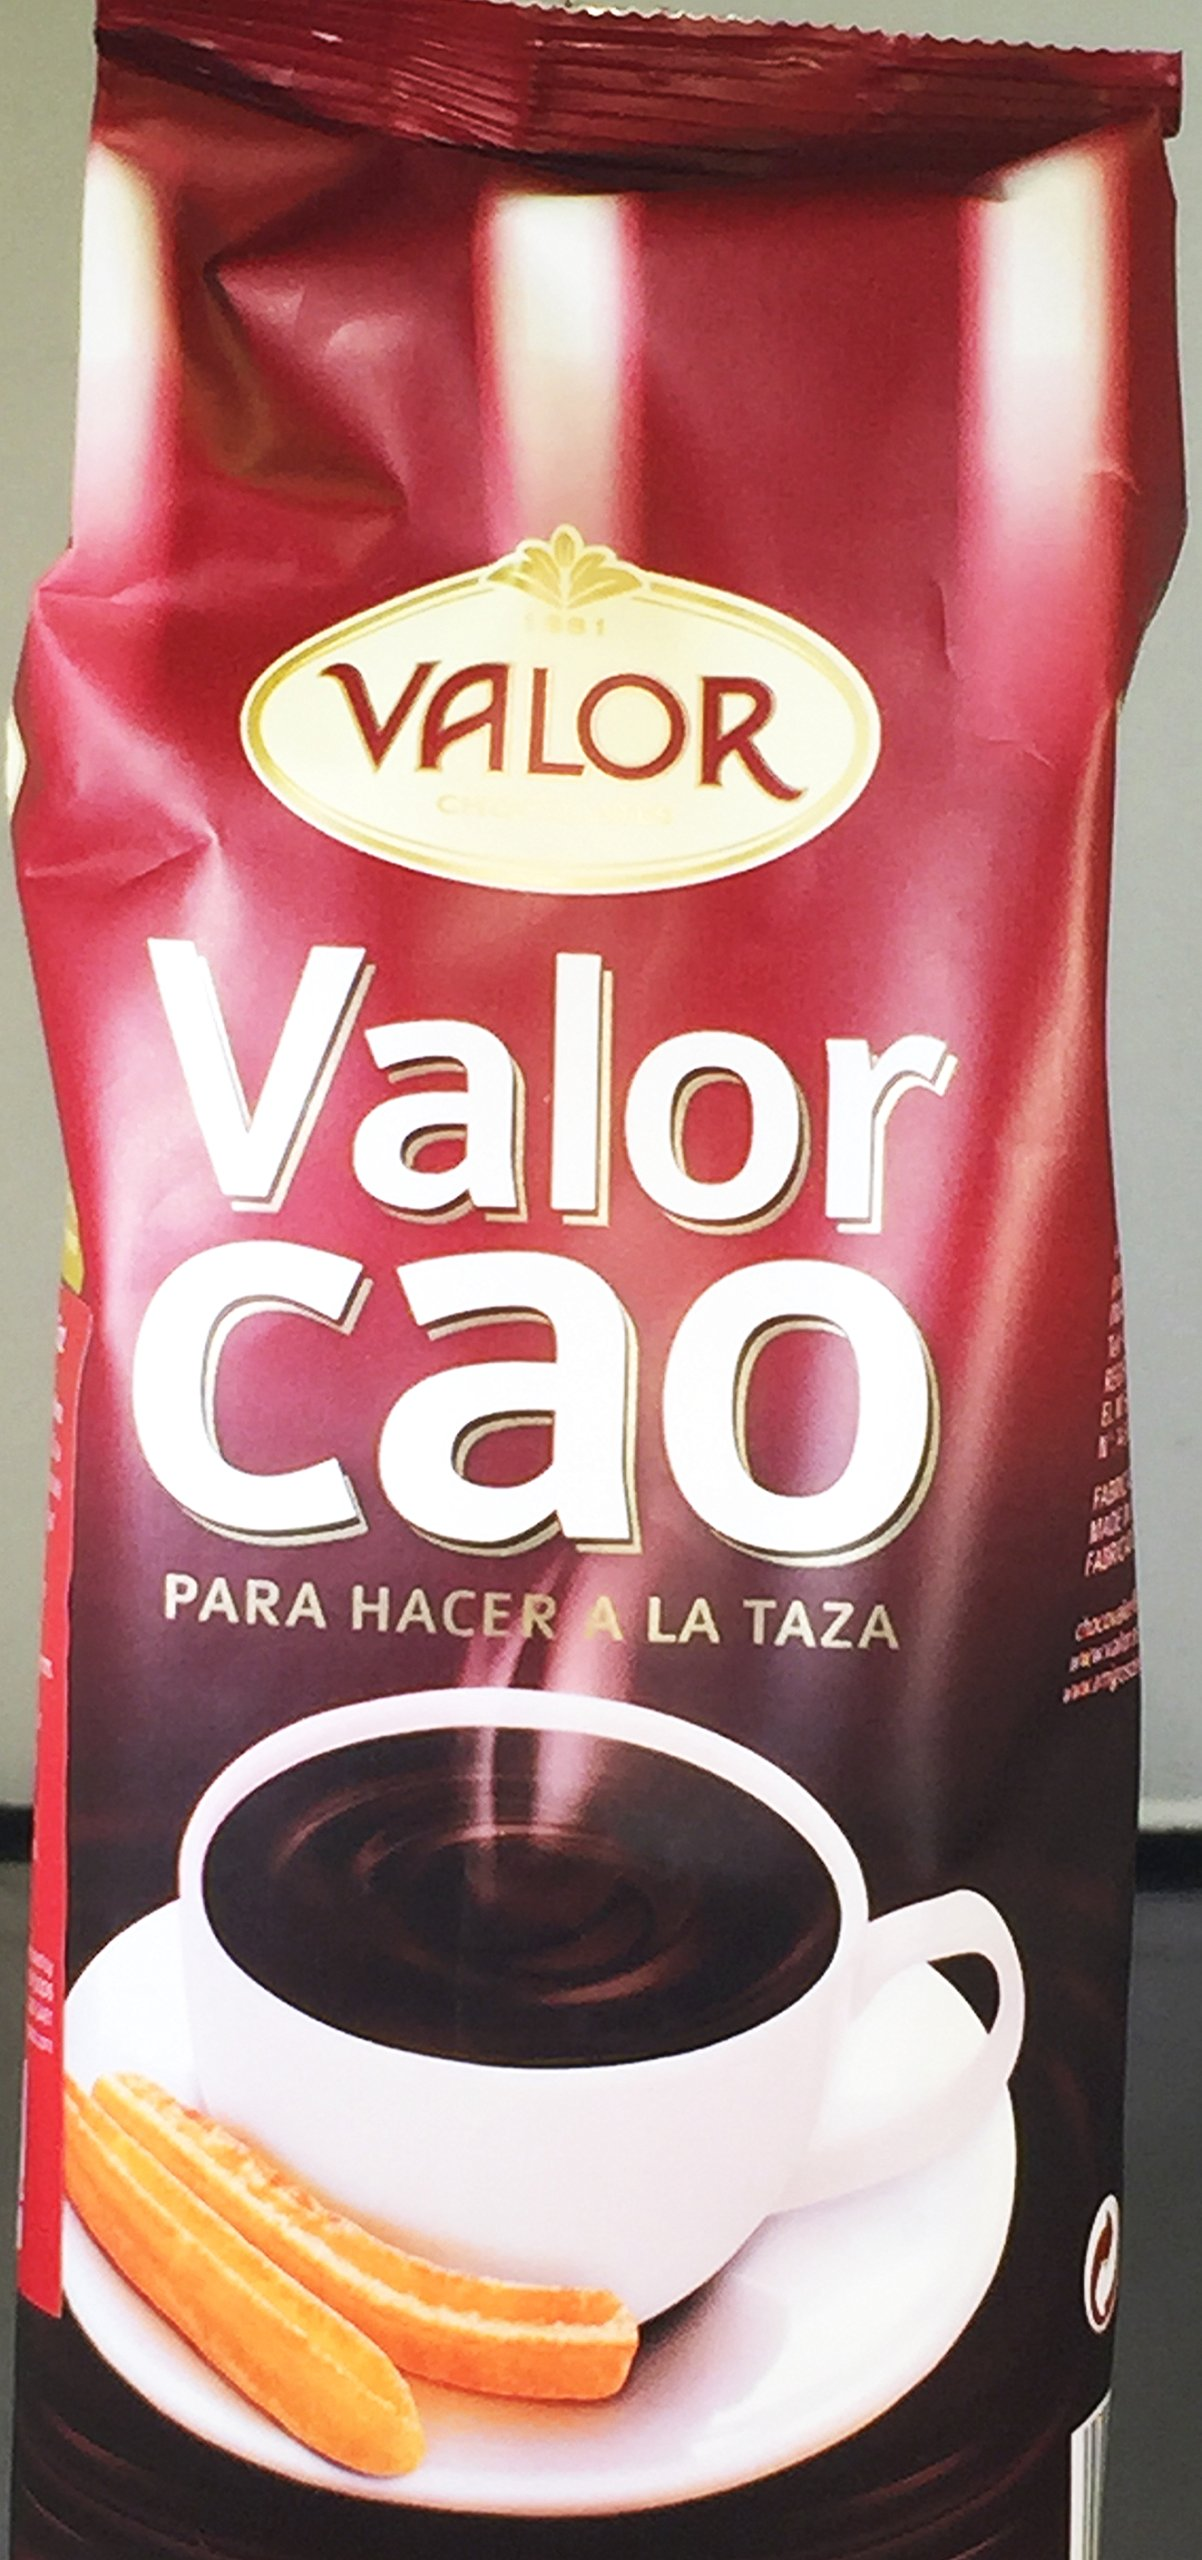 Valor Chocolate a la Taza Powder from Spain (500g/17.5oz)